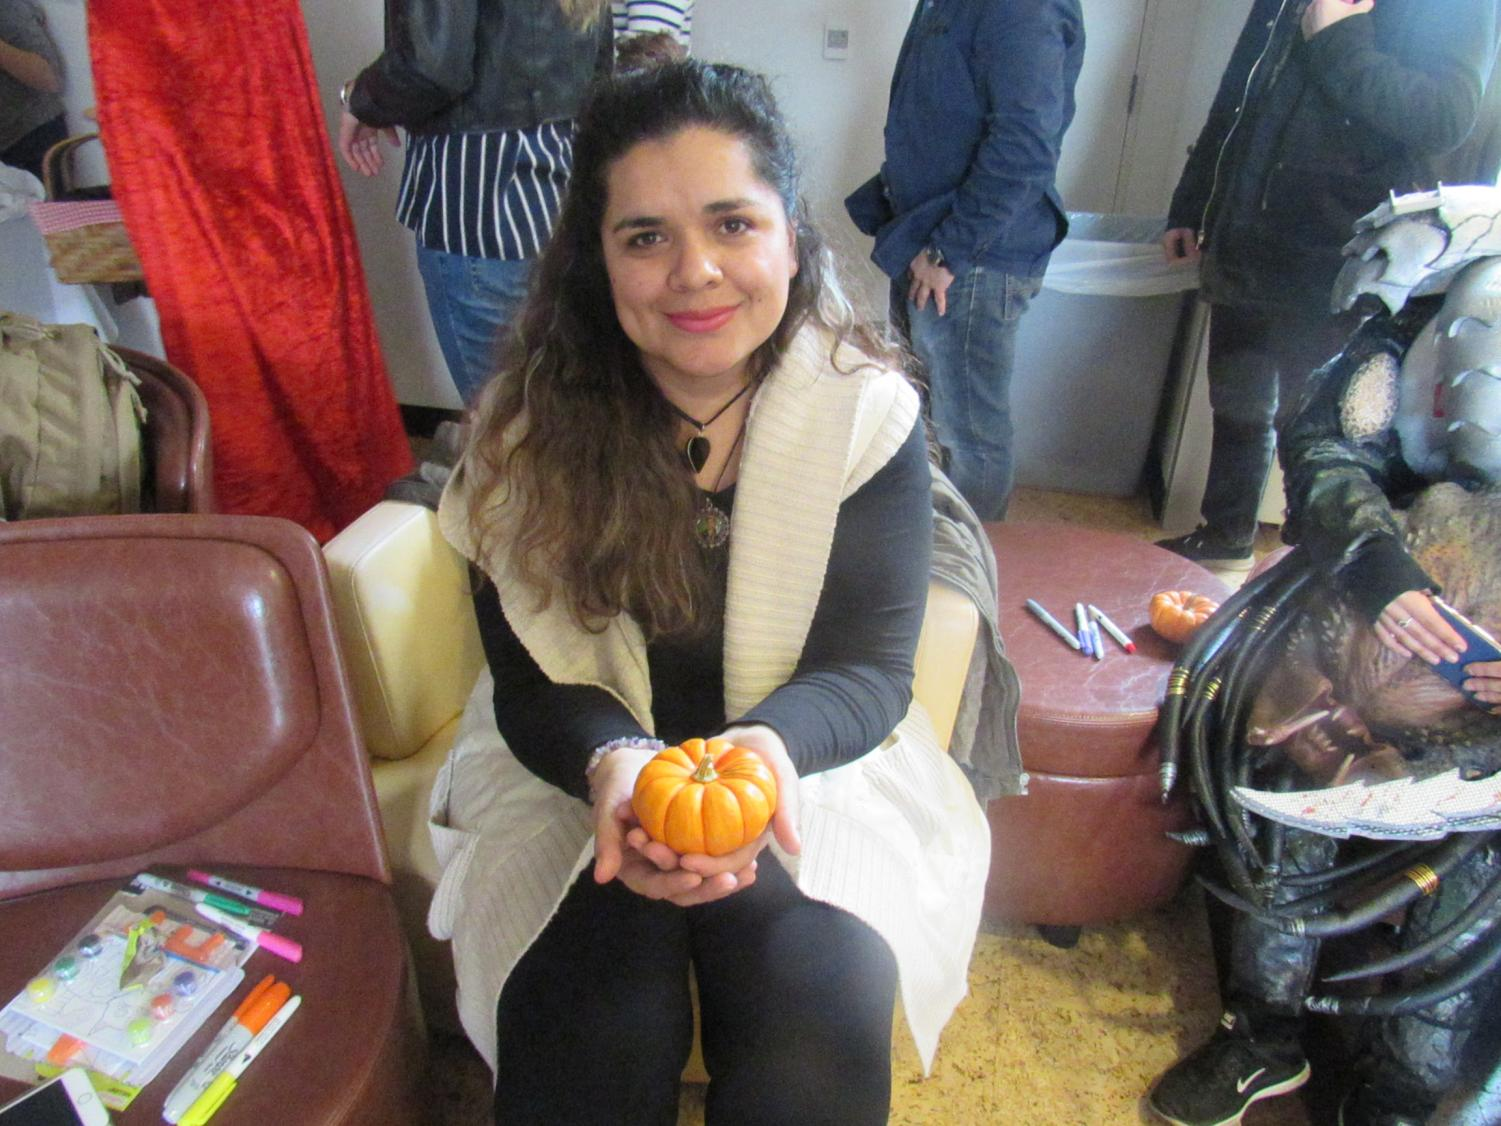 NEIU+student+Daesy+Ruiz+poses+with+mini-pumpkin.